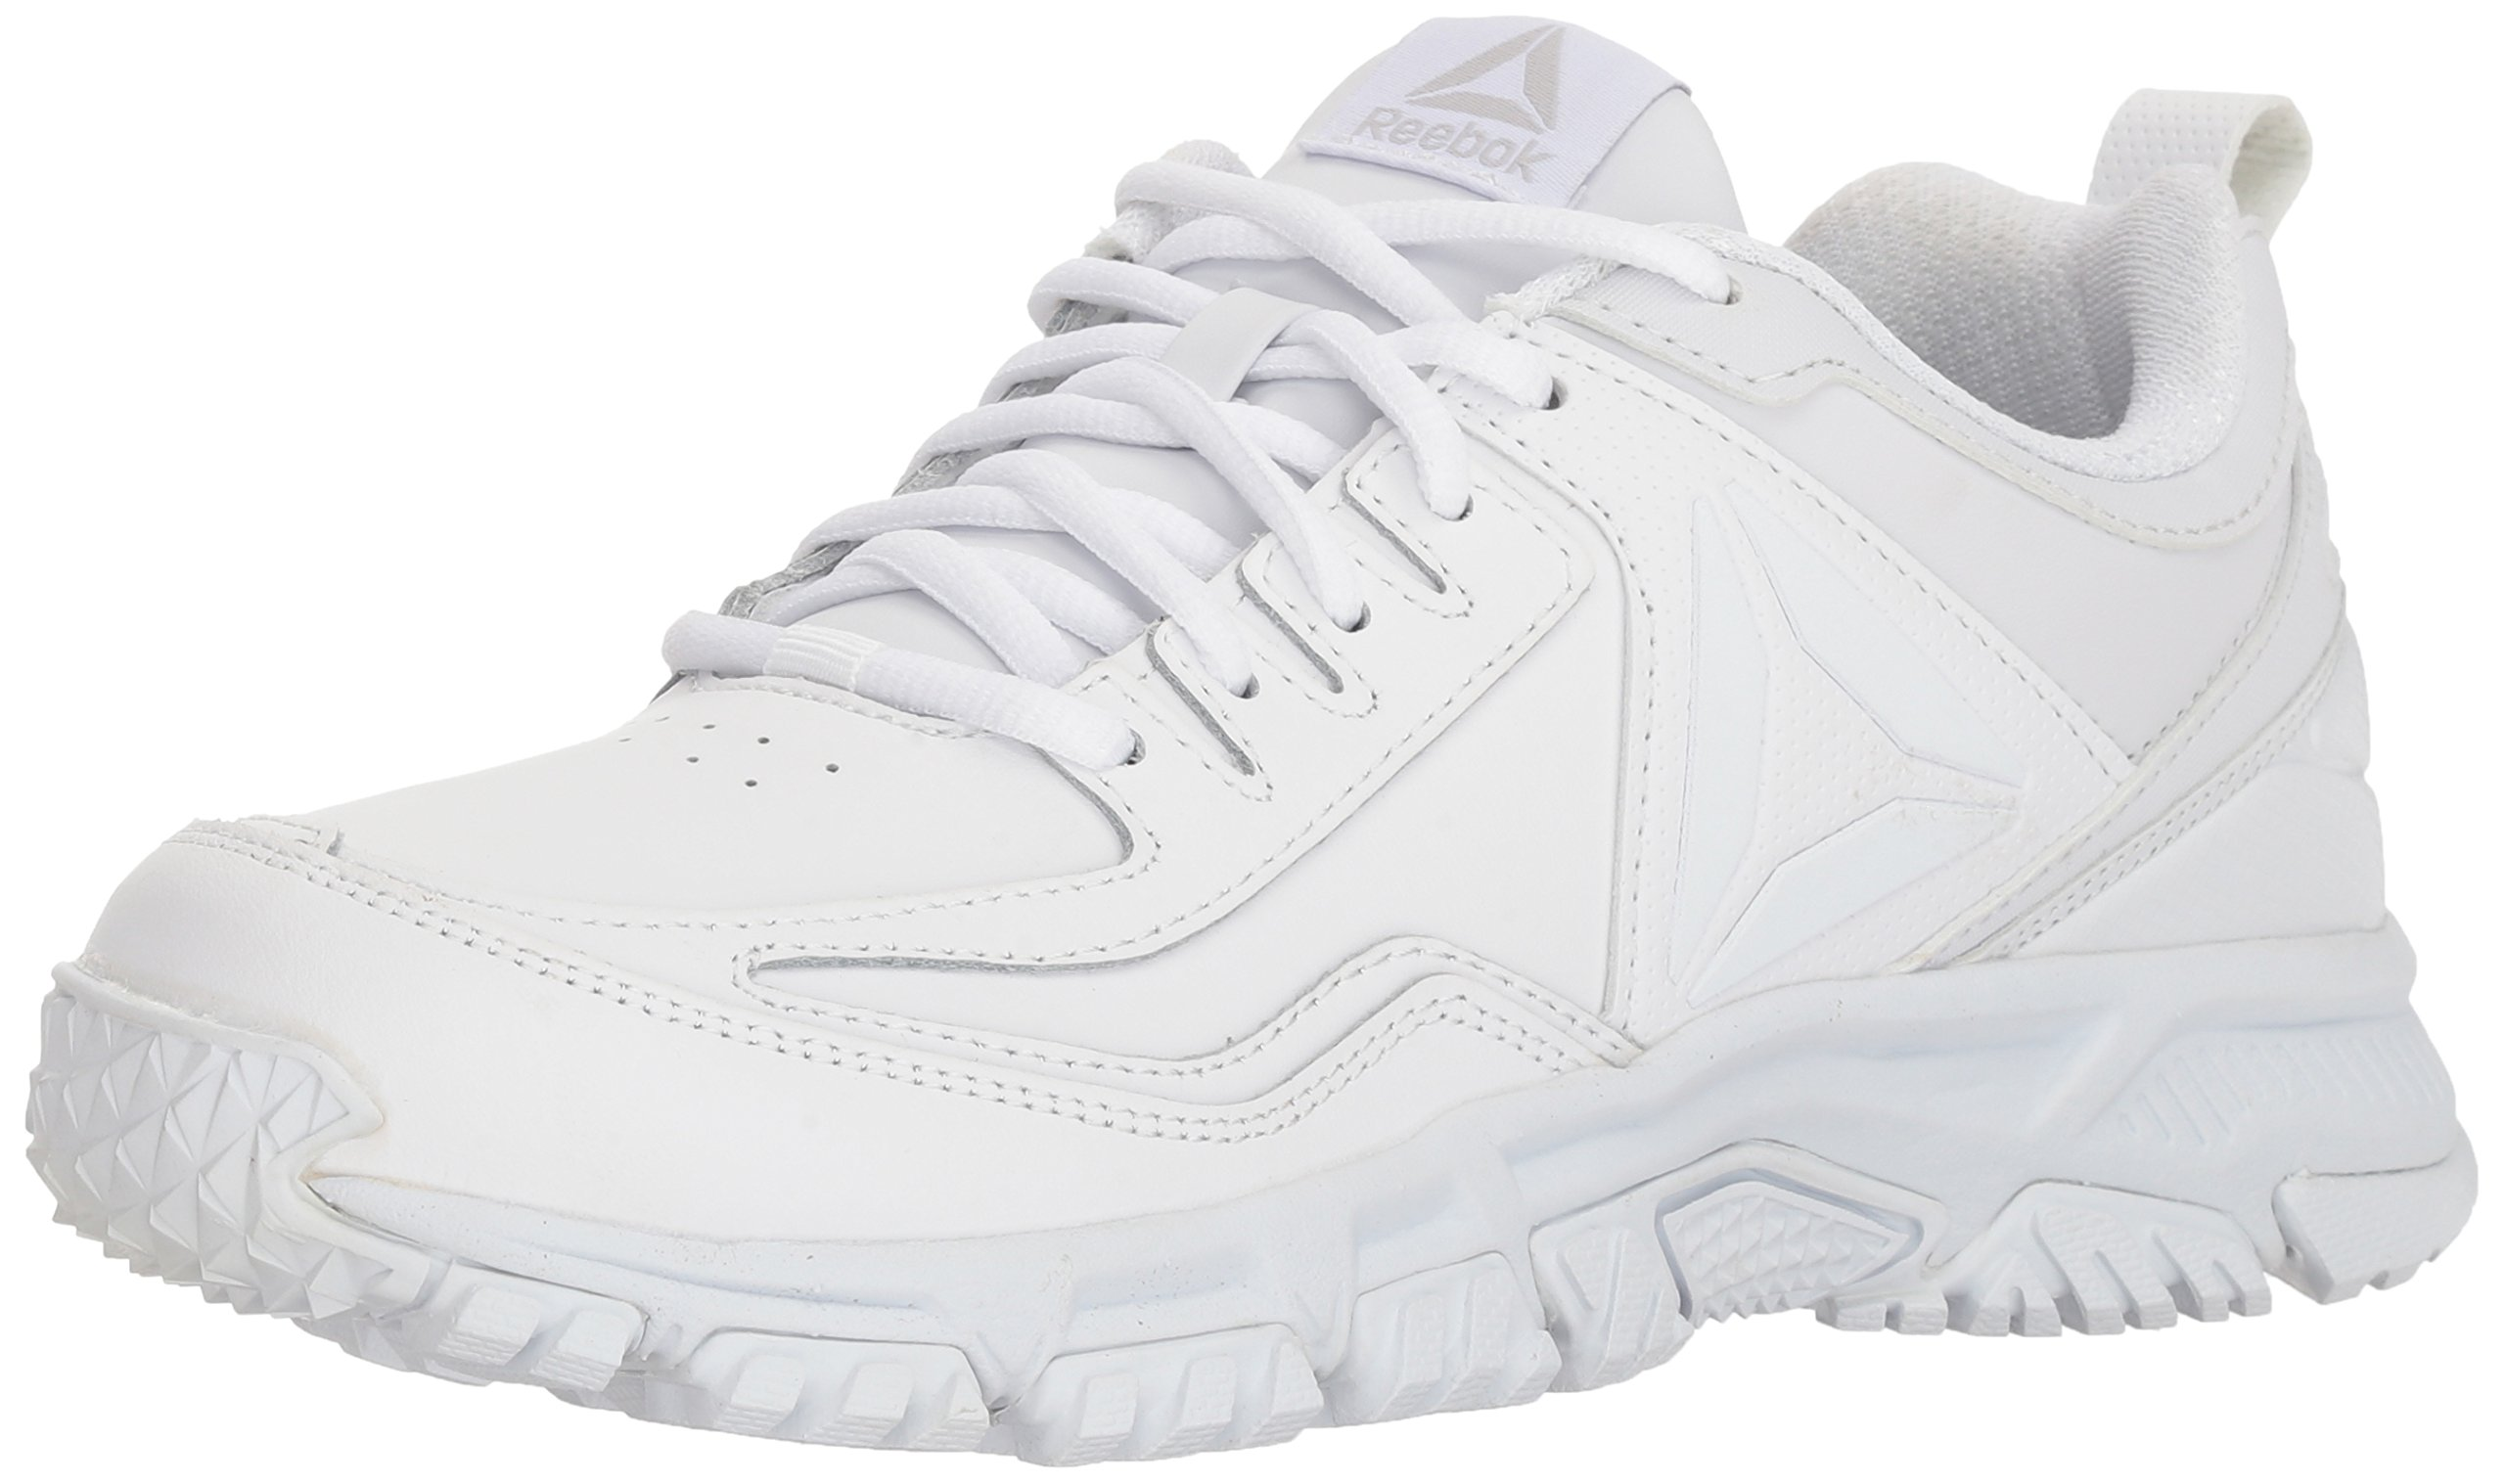 99e3cab376 Reebok Men's Ridgerider Leather, White, 9 M US